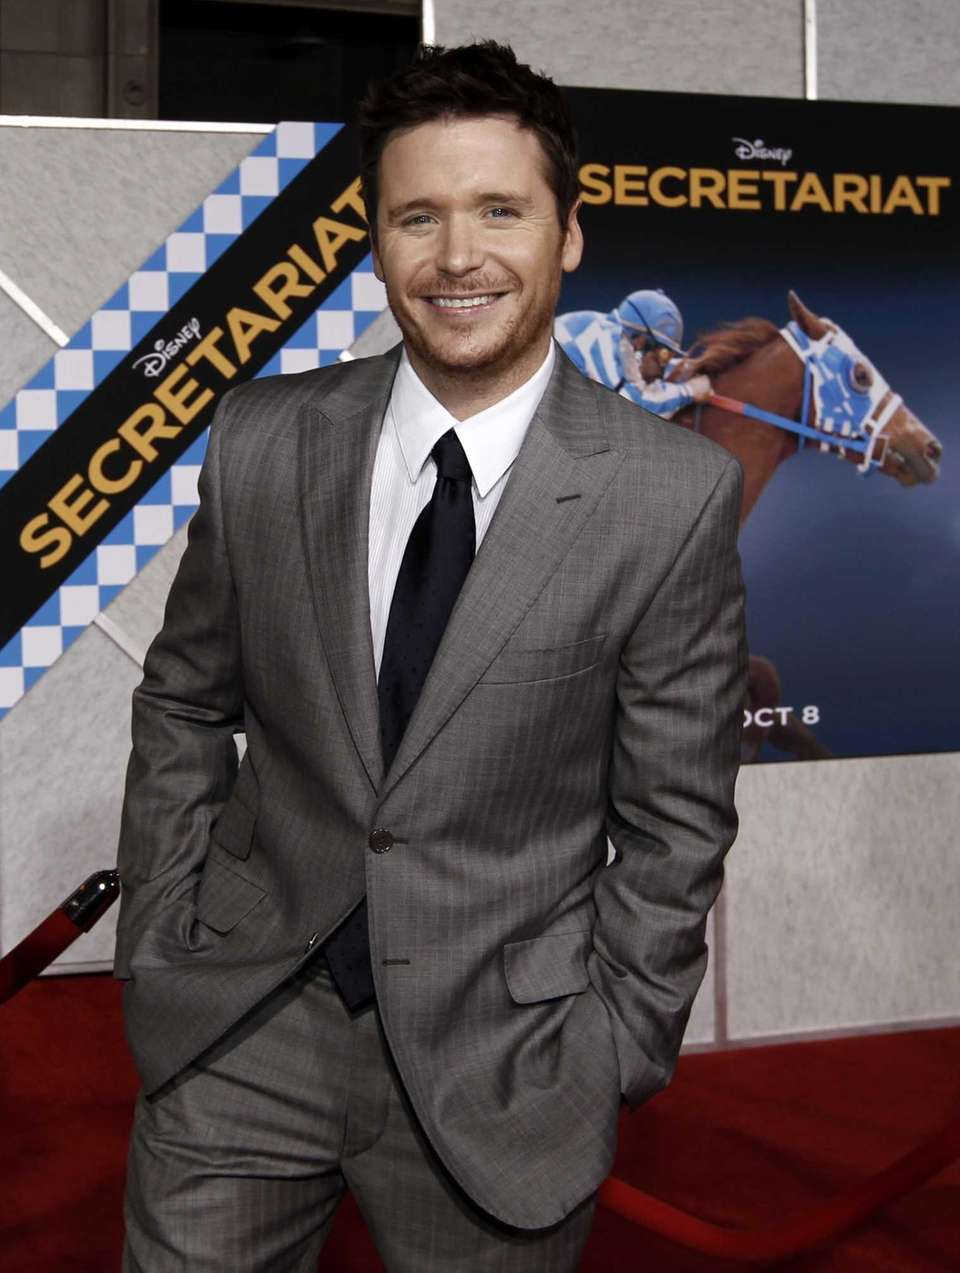 Actor Kevin Connolly, best known for the role